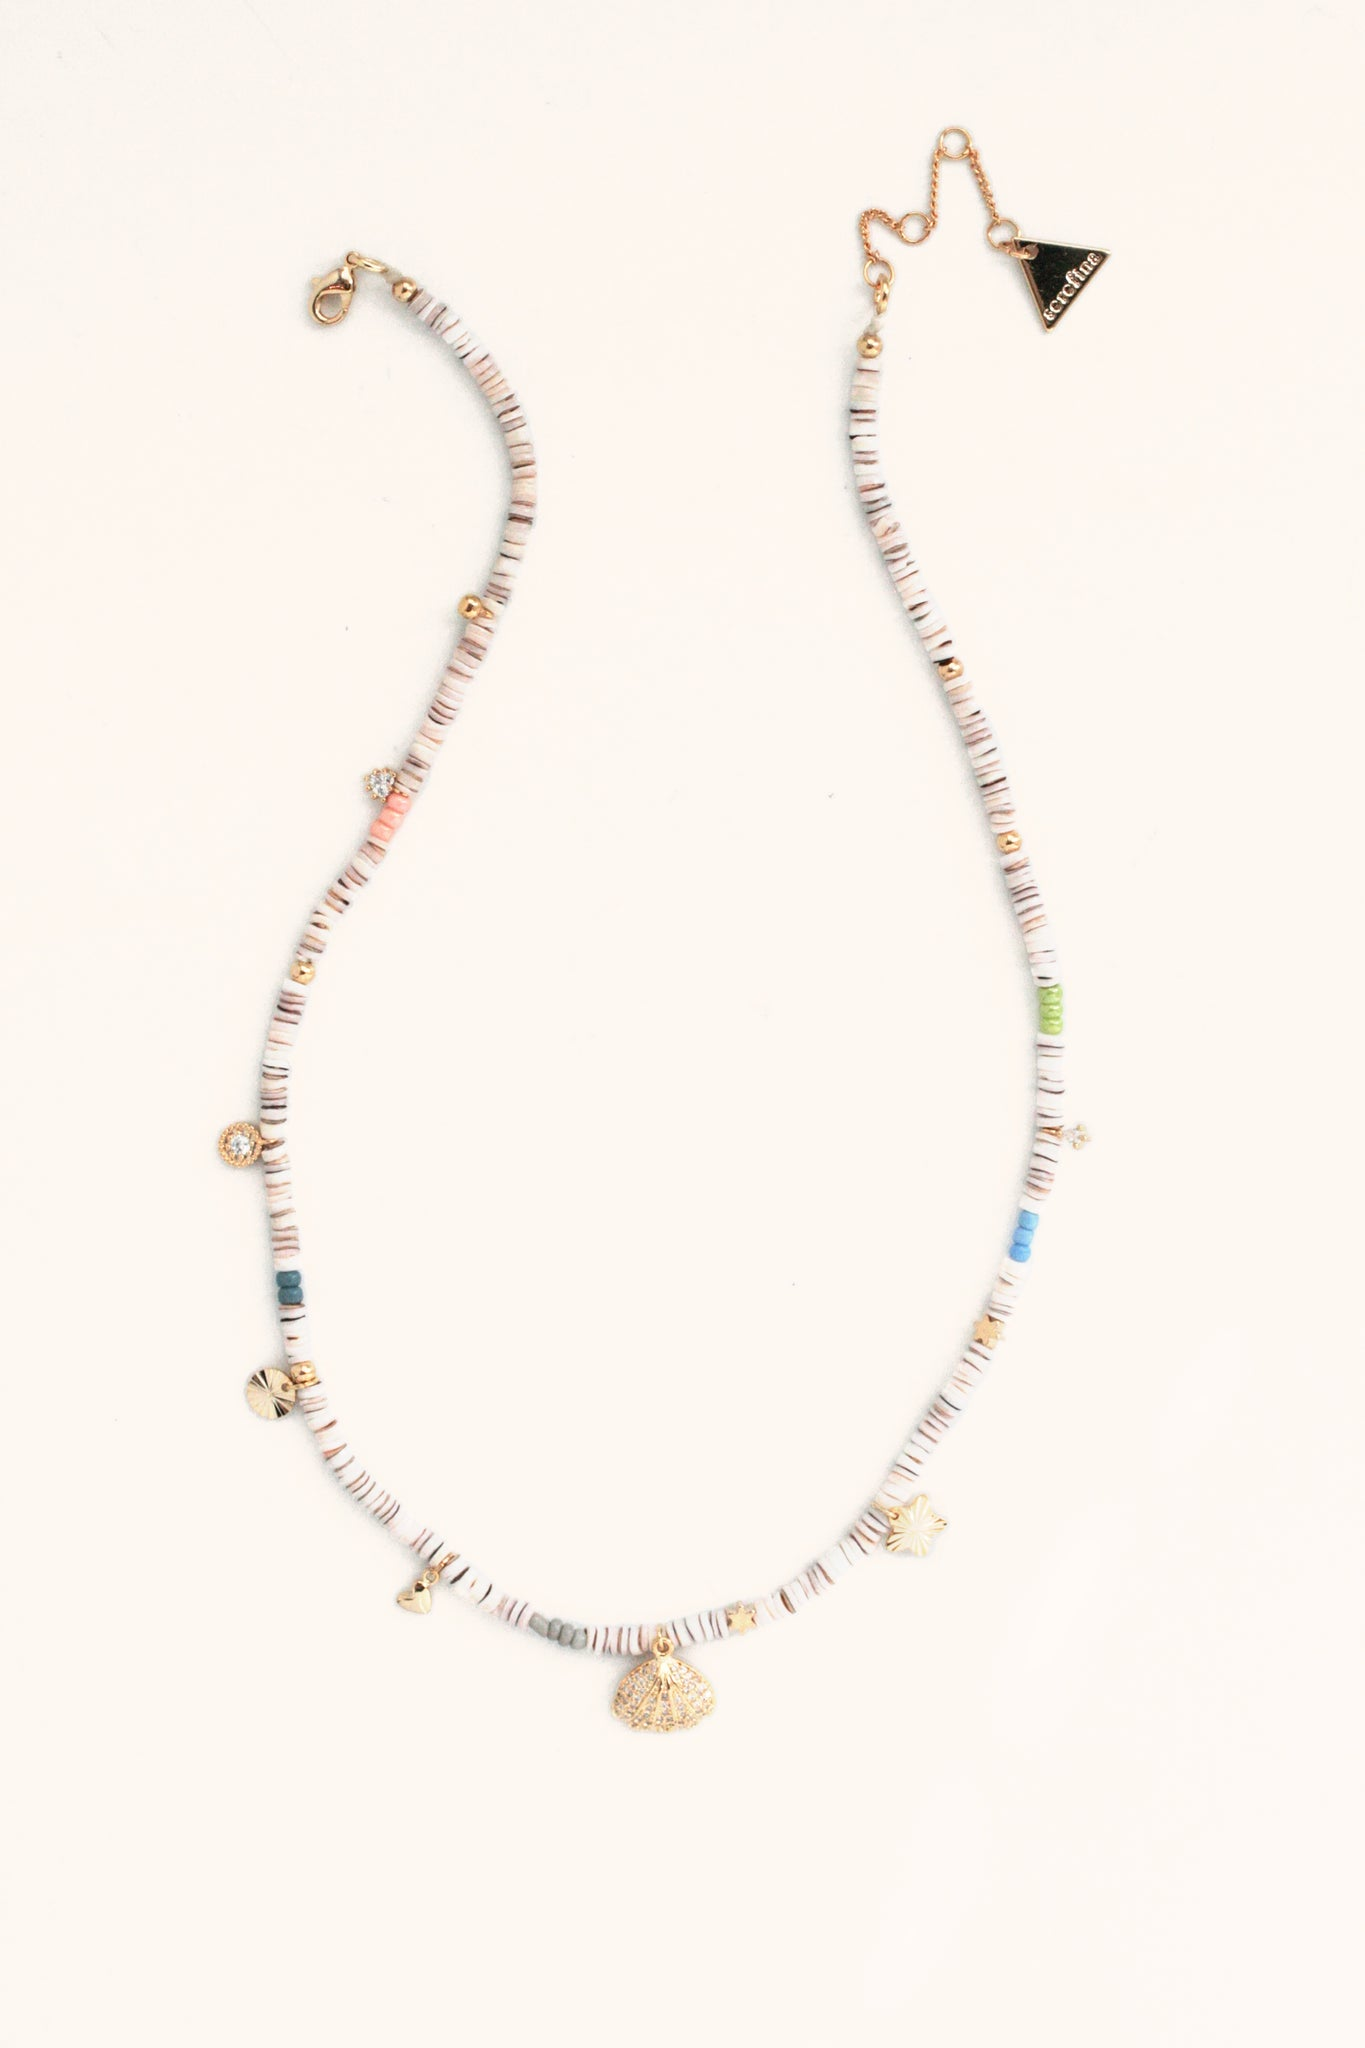 Beaded Charm Necklace - White